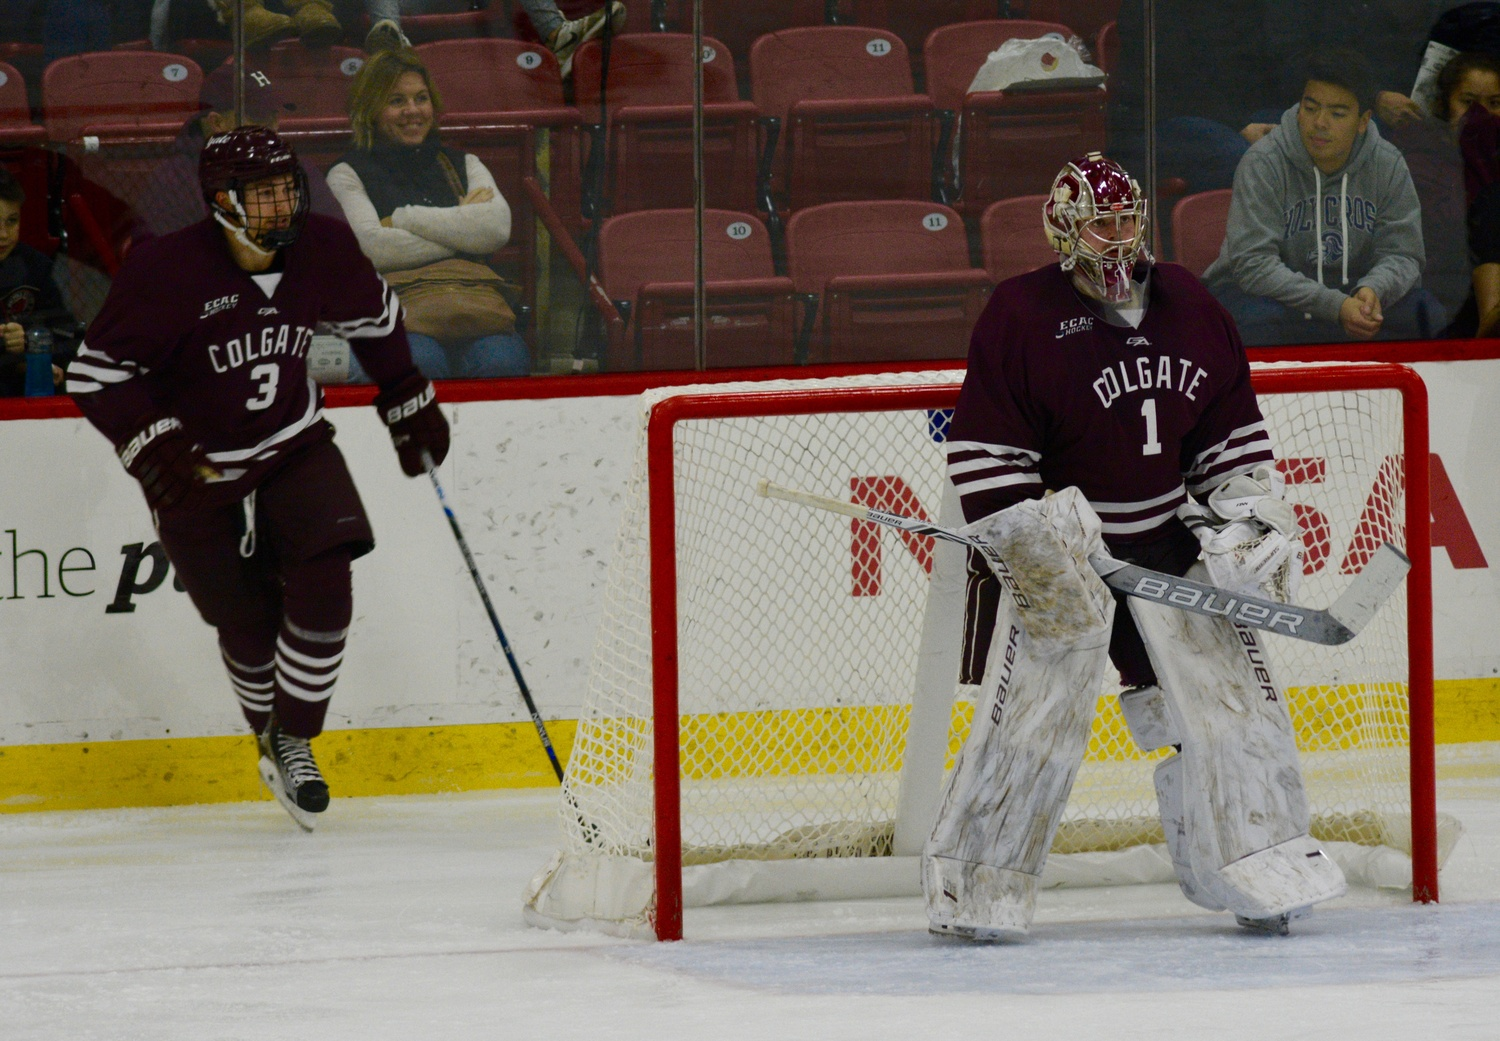 Senior goaltender Charlie Finn stopped 41 of the 42 shots he saw Friday night.